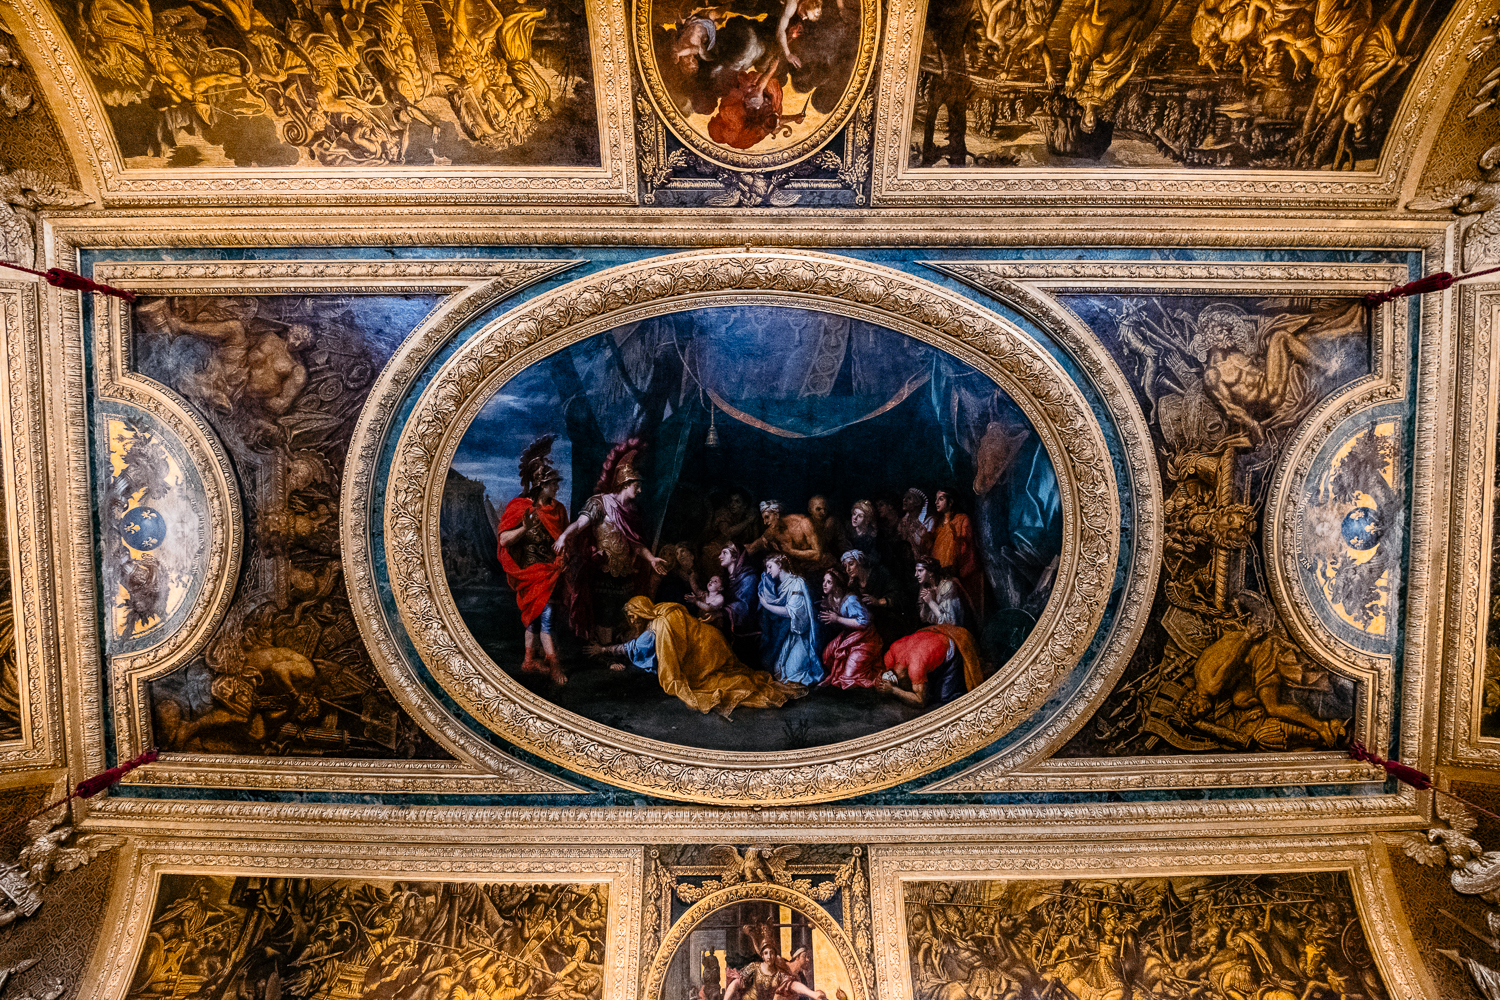 Modest ceiling at Versailles